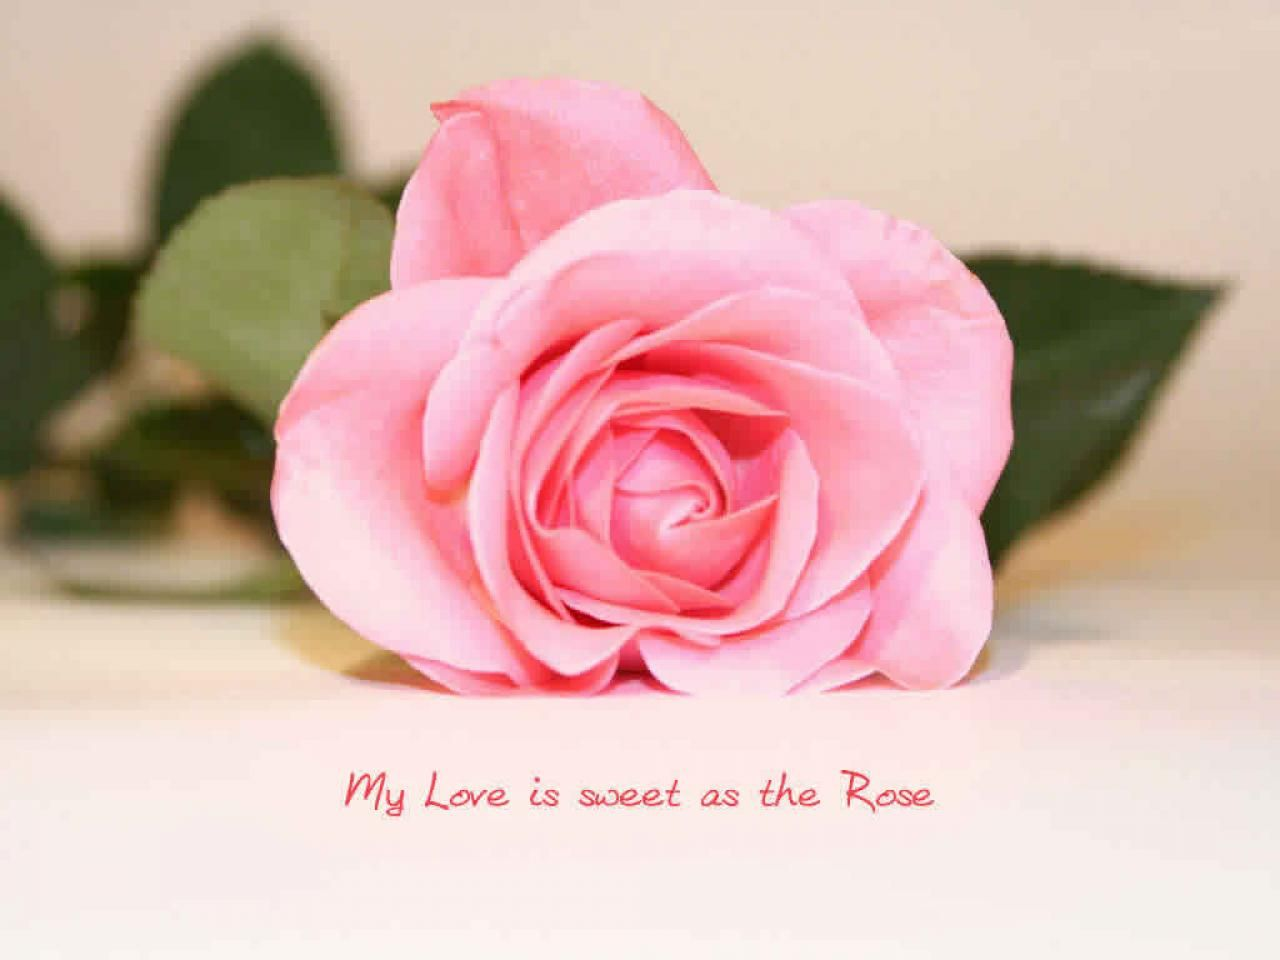 facebook quotes and pictures | Free Download HD Pink Rose Love ...